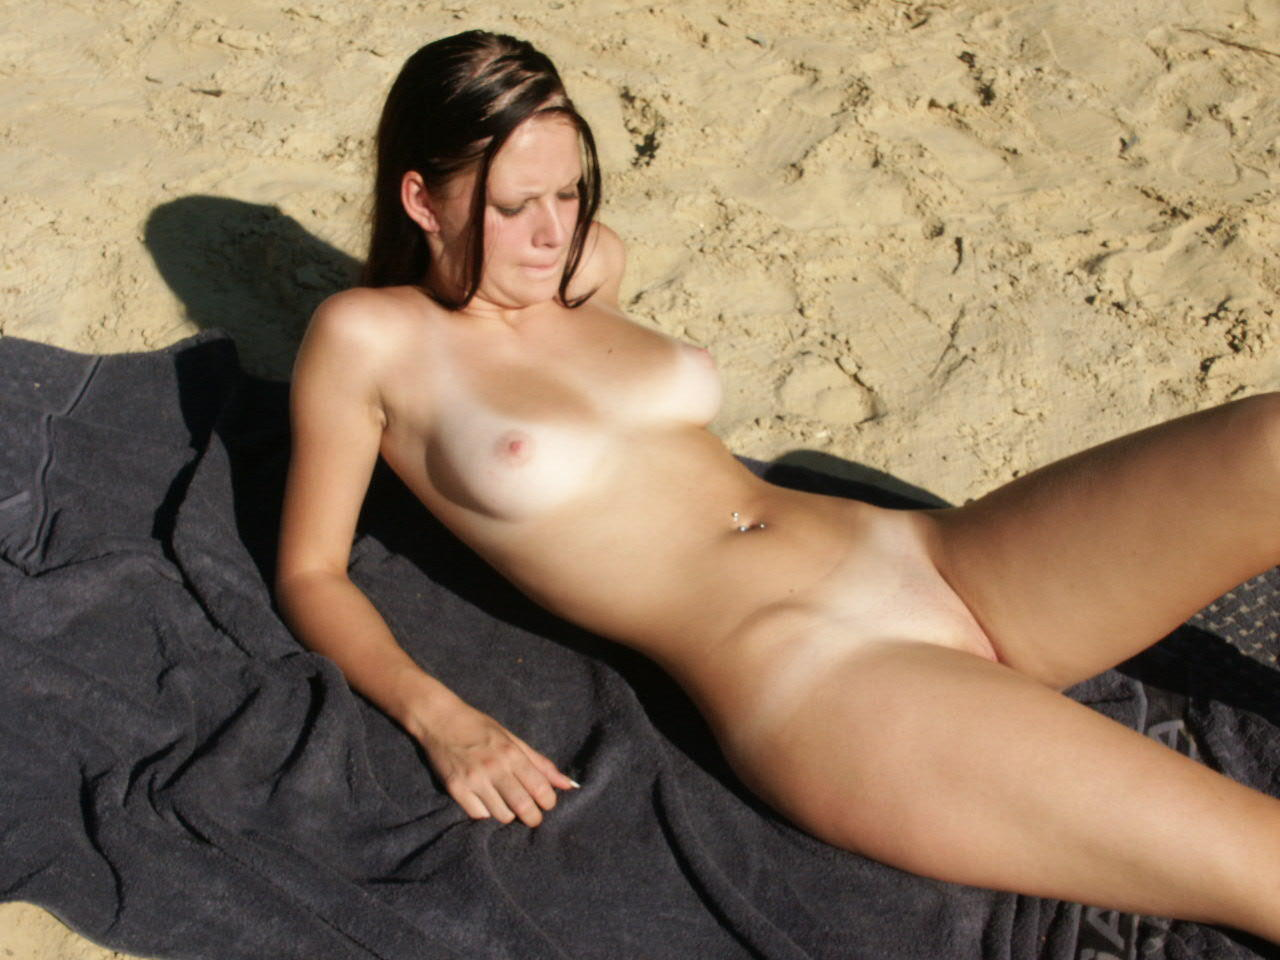 Nude girl in swamp erotica videos